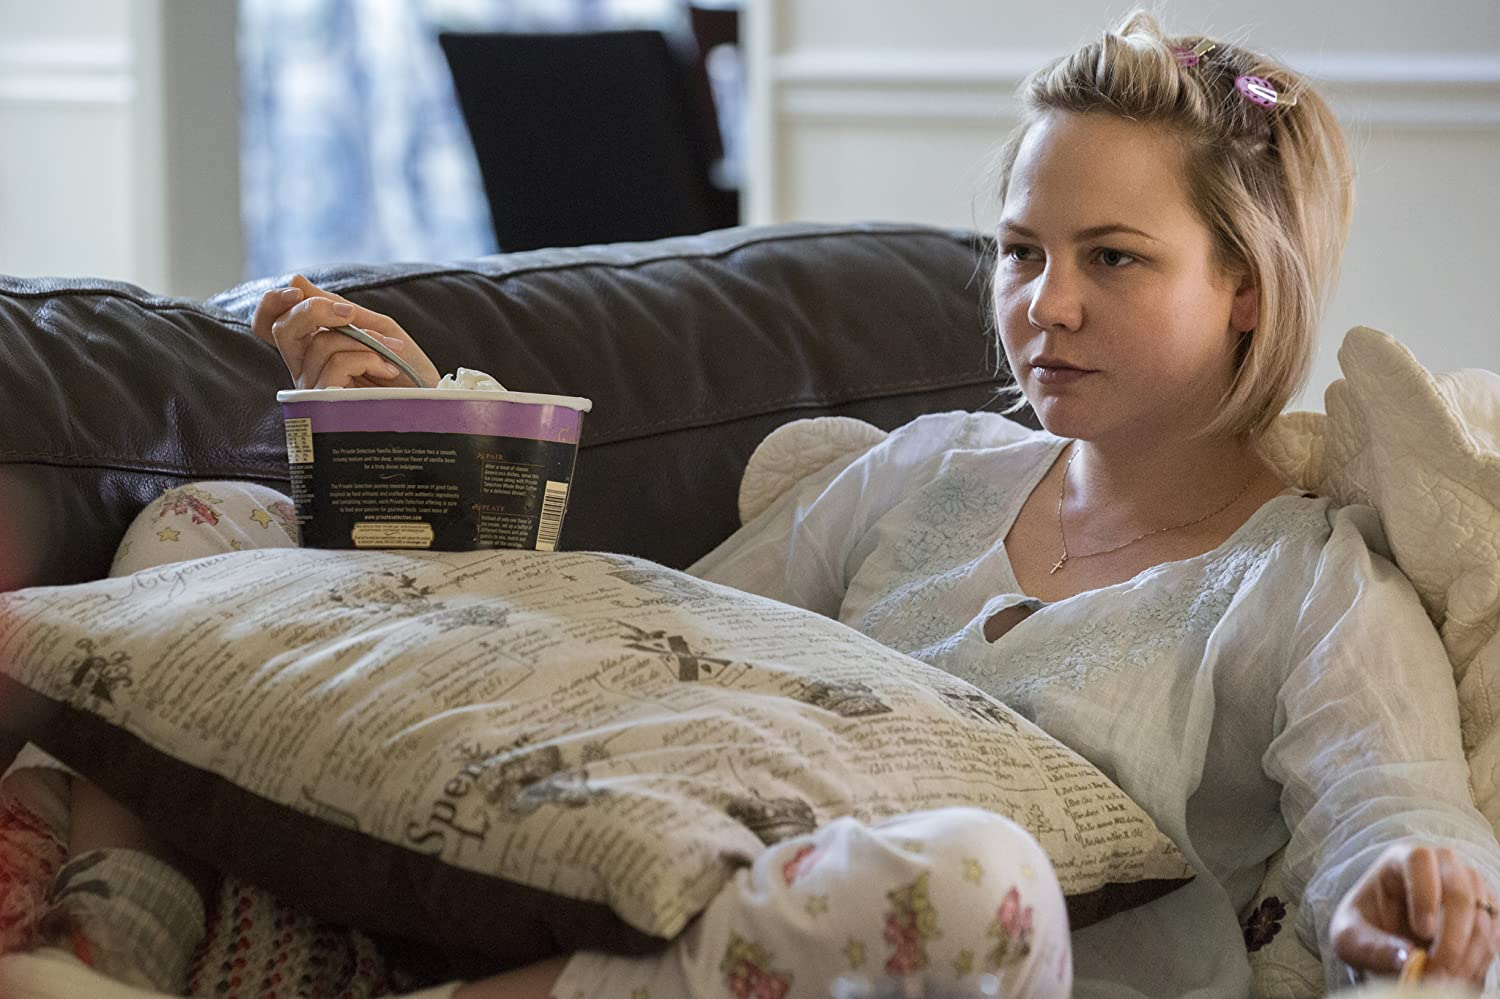 Adelaide Clemens in Rectify (2013)